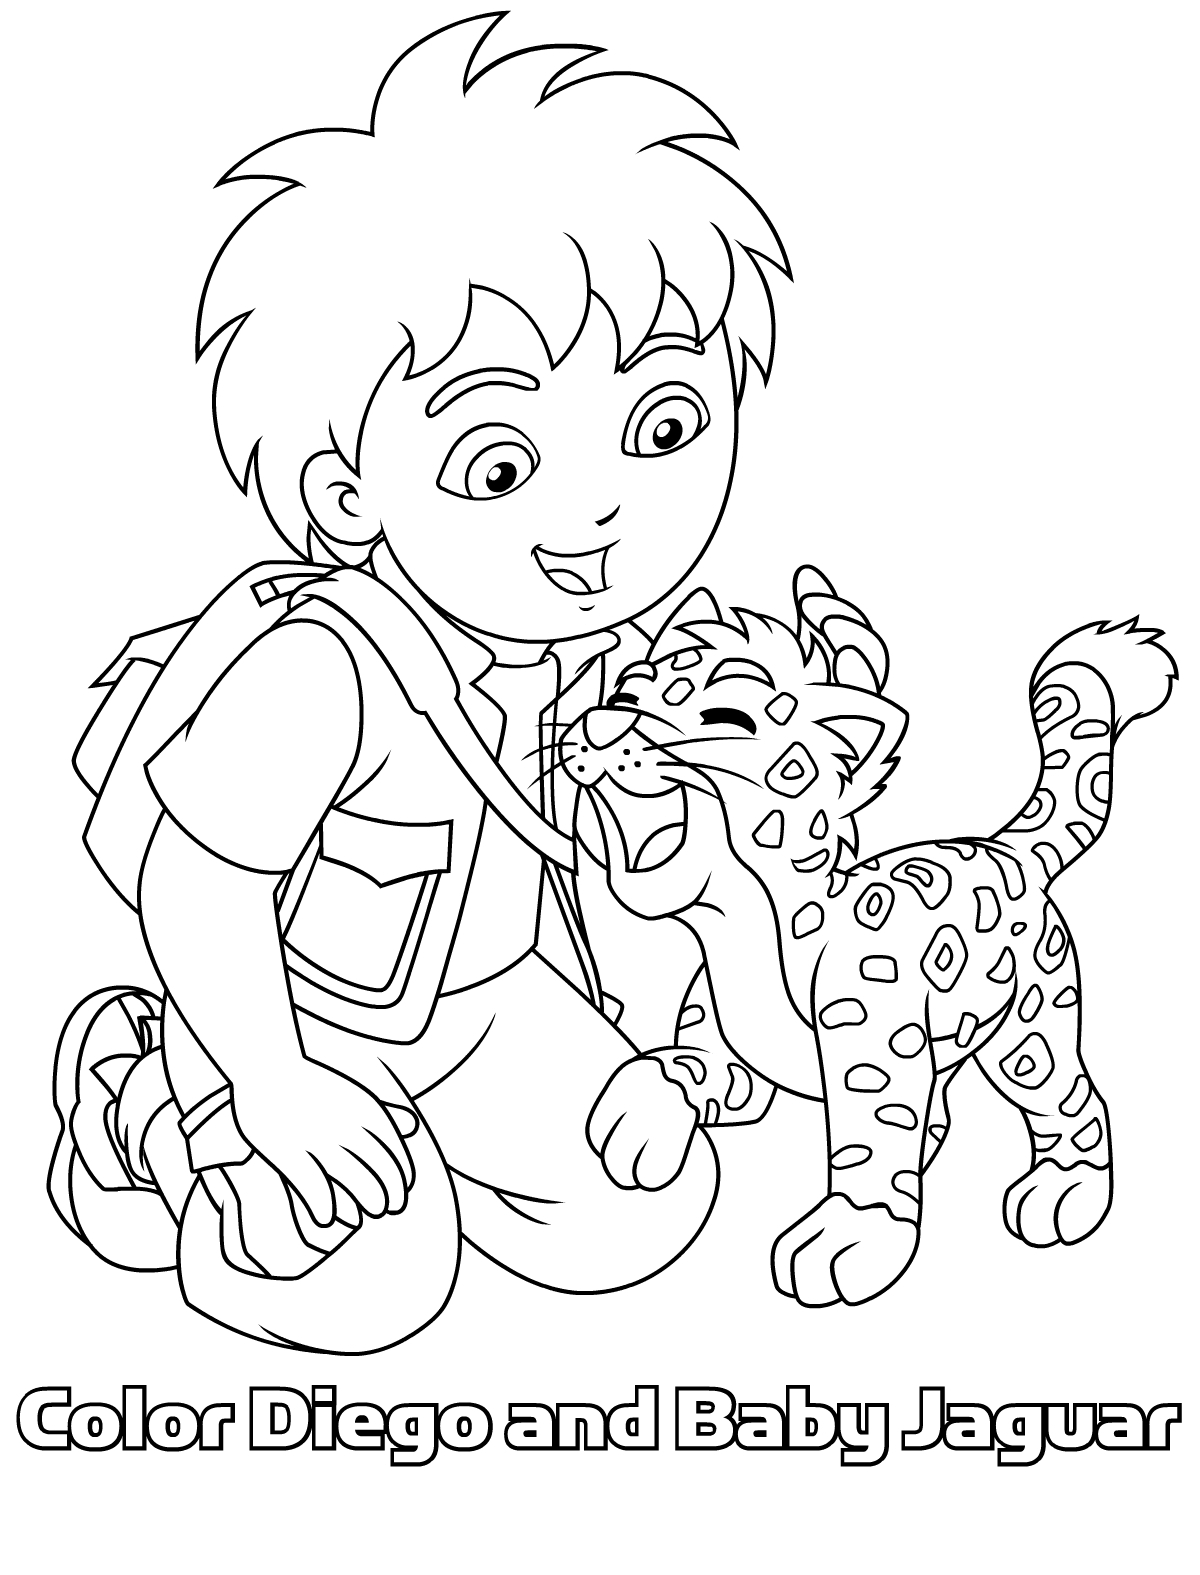 diego christmas coloring pages - photo#32